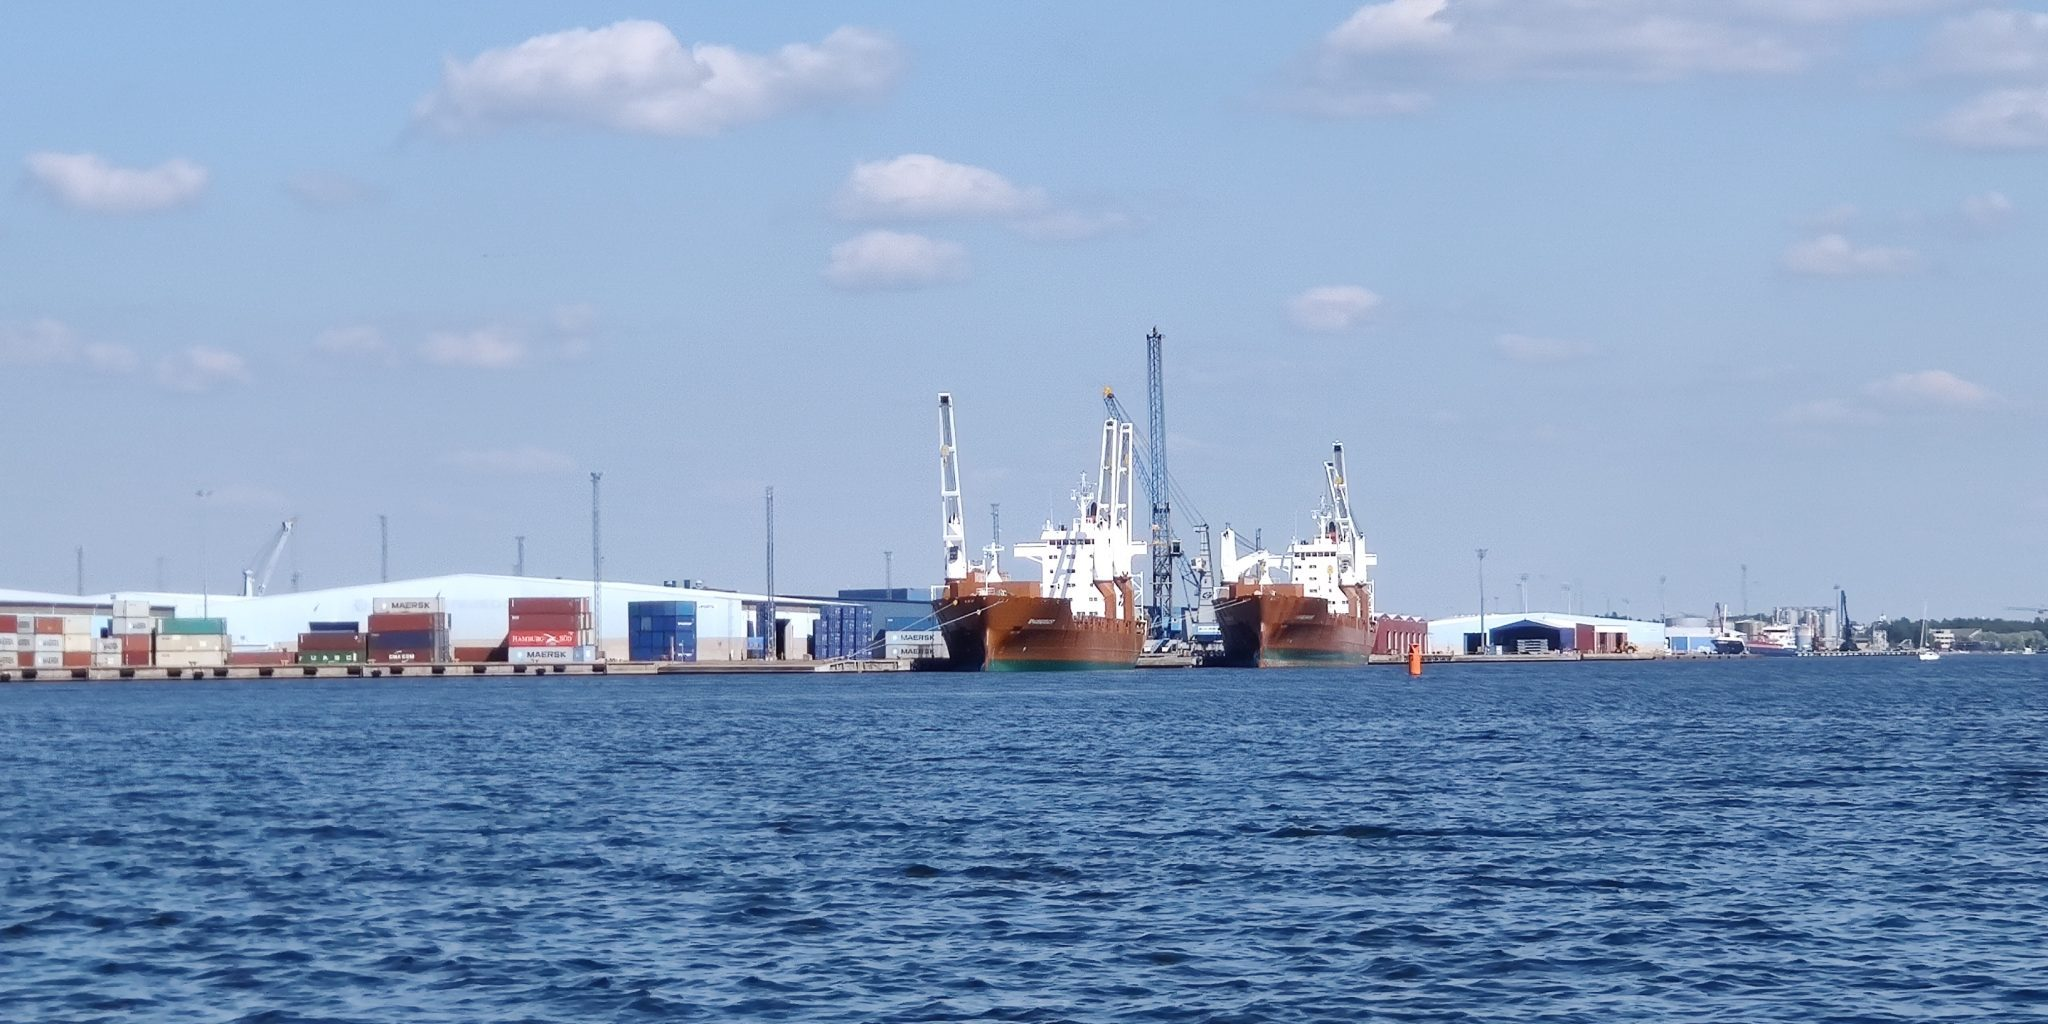 Harbor image with the sea in the foreground and ships being loaded in the background.